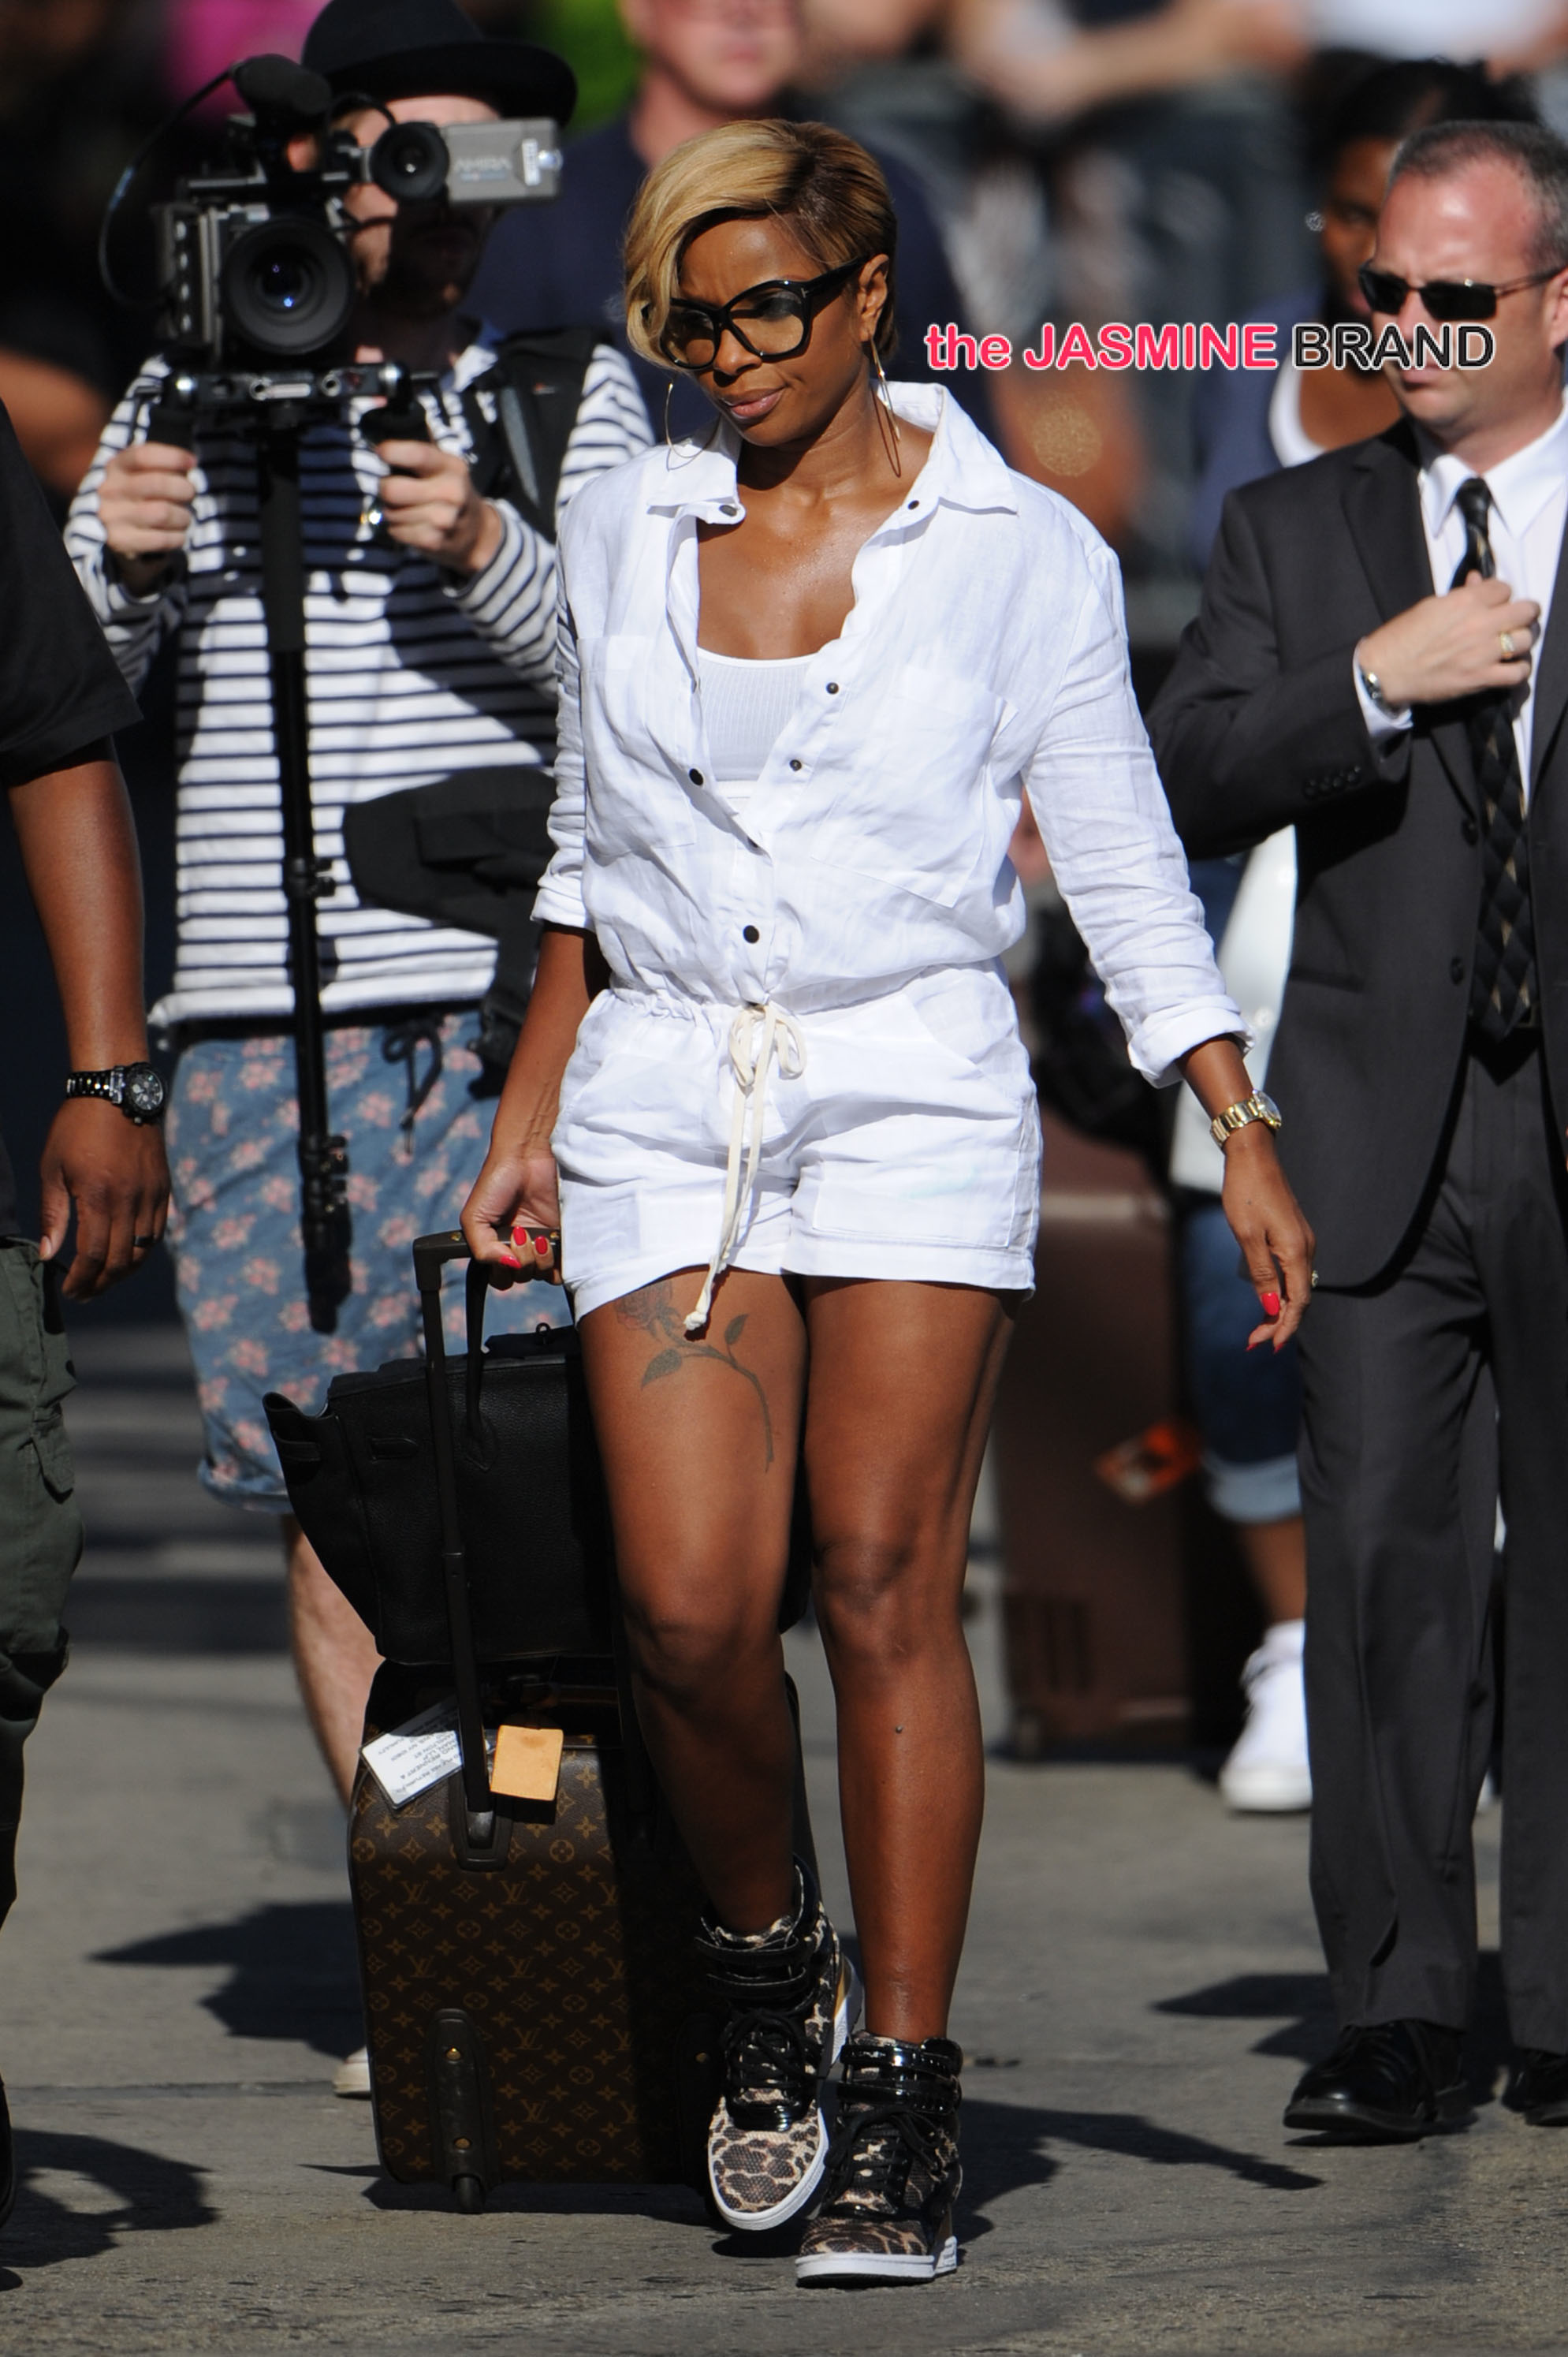 Mary J Blige shows off her legs in an all white outfit in Hollywood!